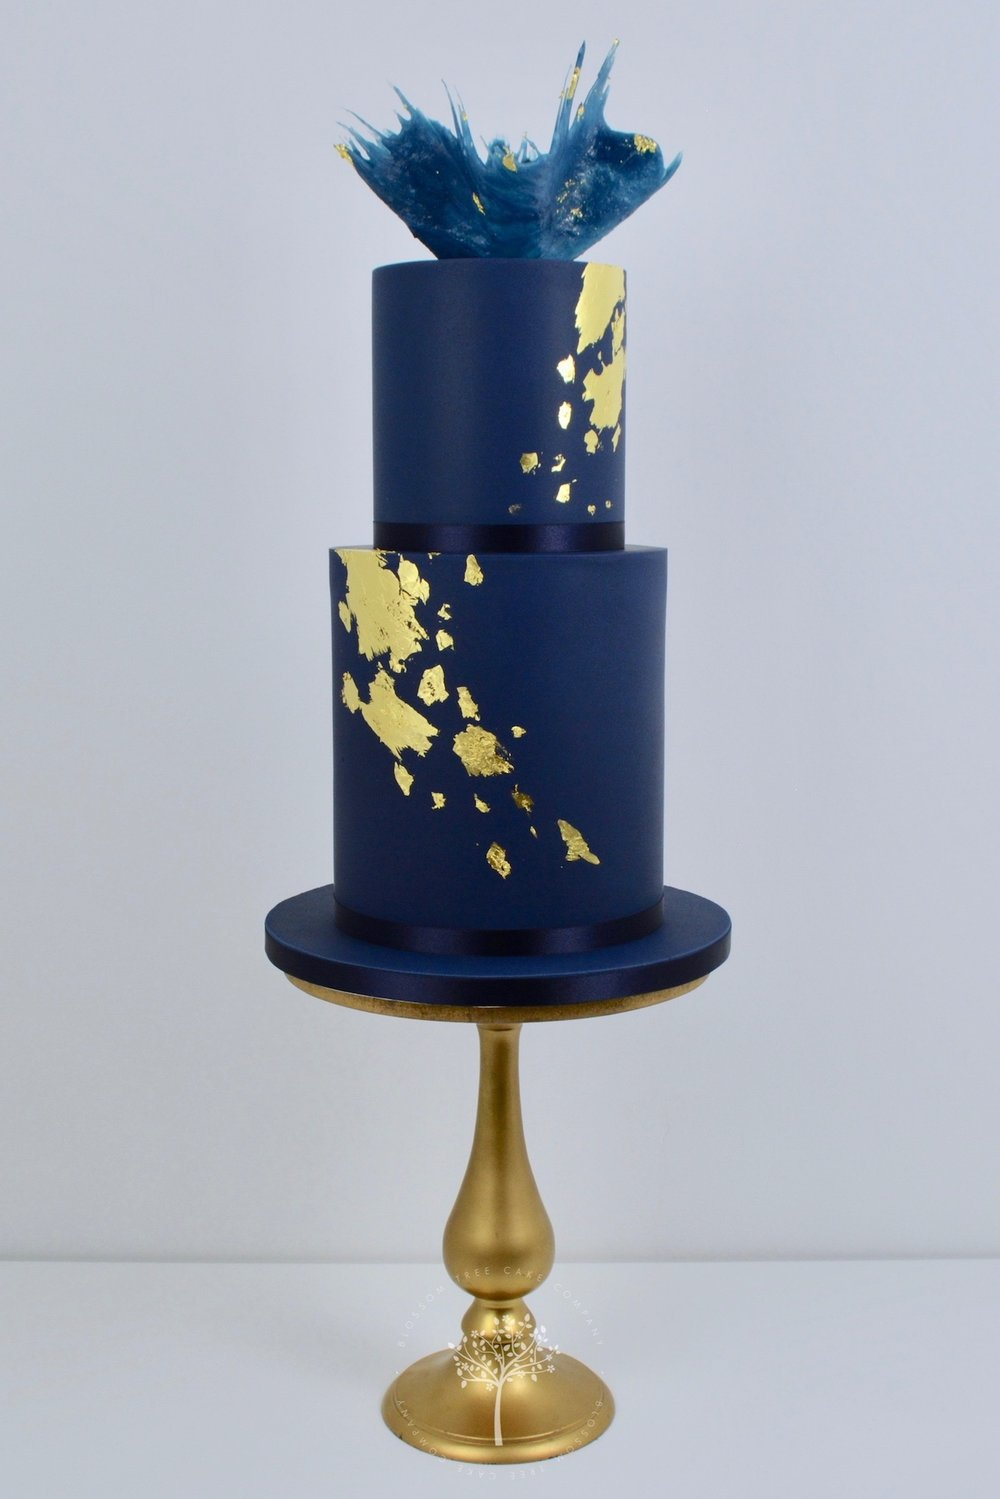 Midnight Gold celebration cake by Blossom Tree Cake Company Harrogate North Yorkshire.jpg